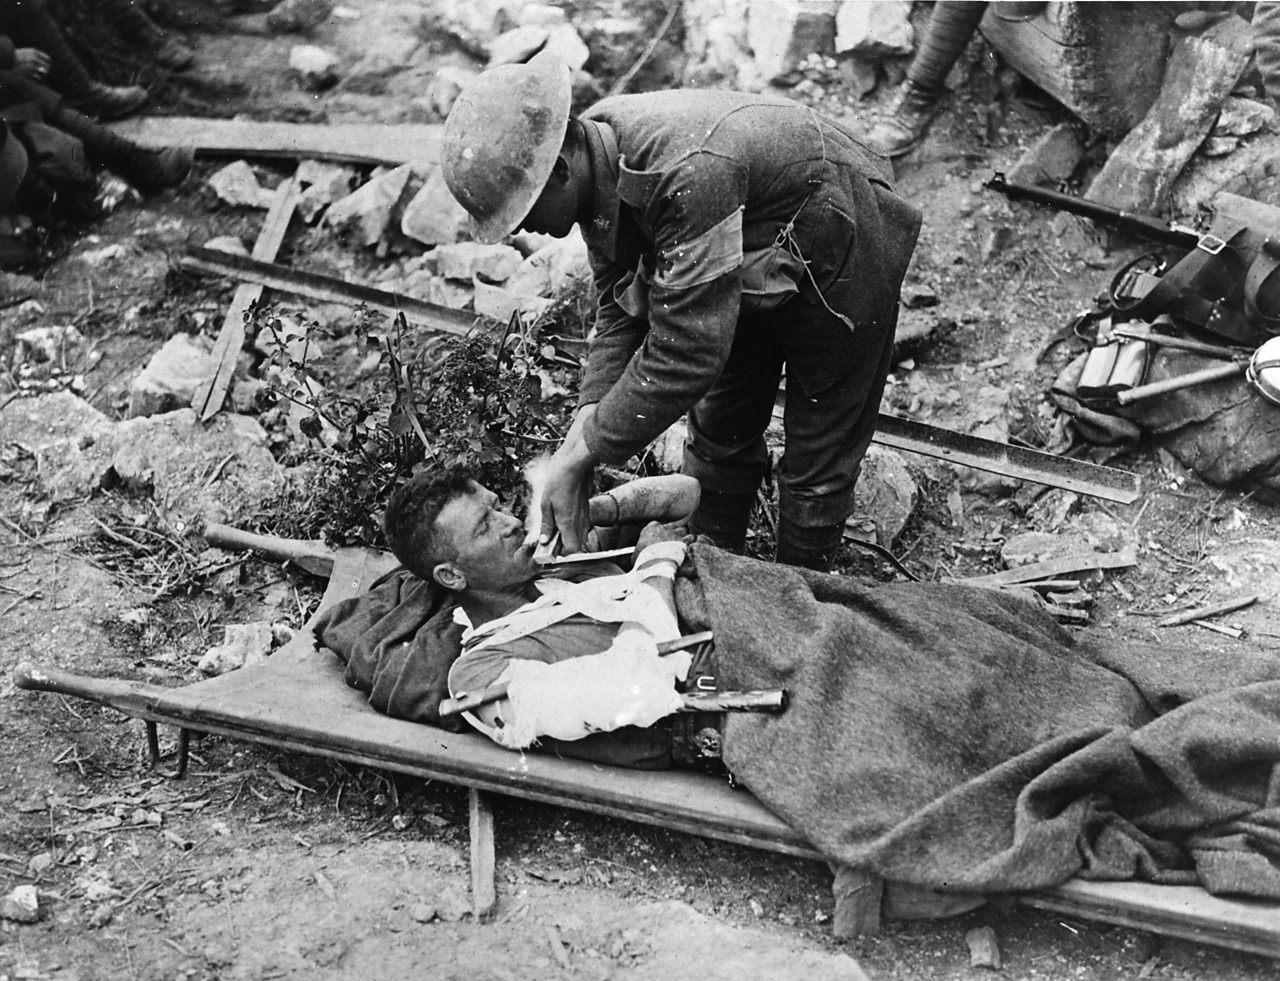 Photograph showing a First World War soldier with an arm splint